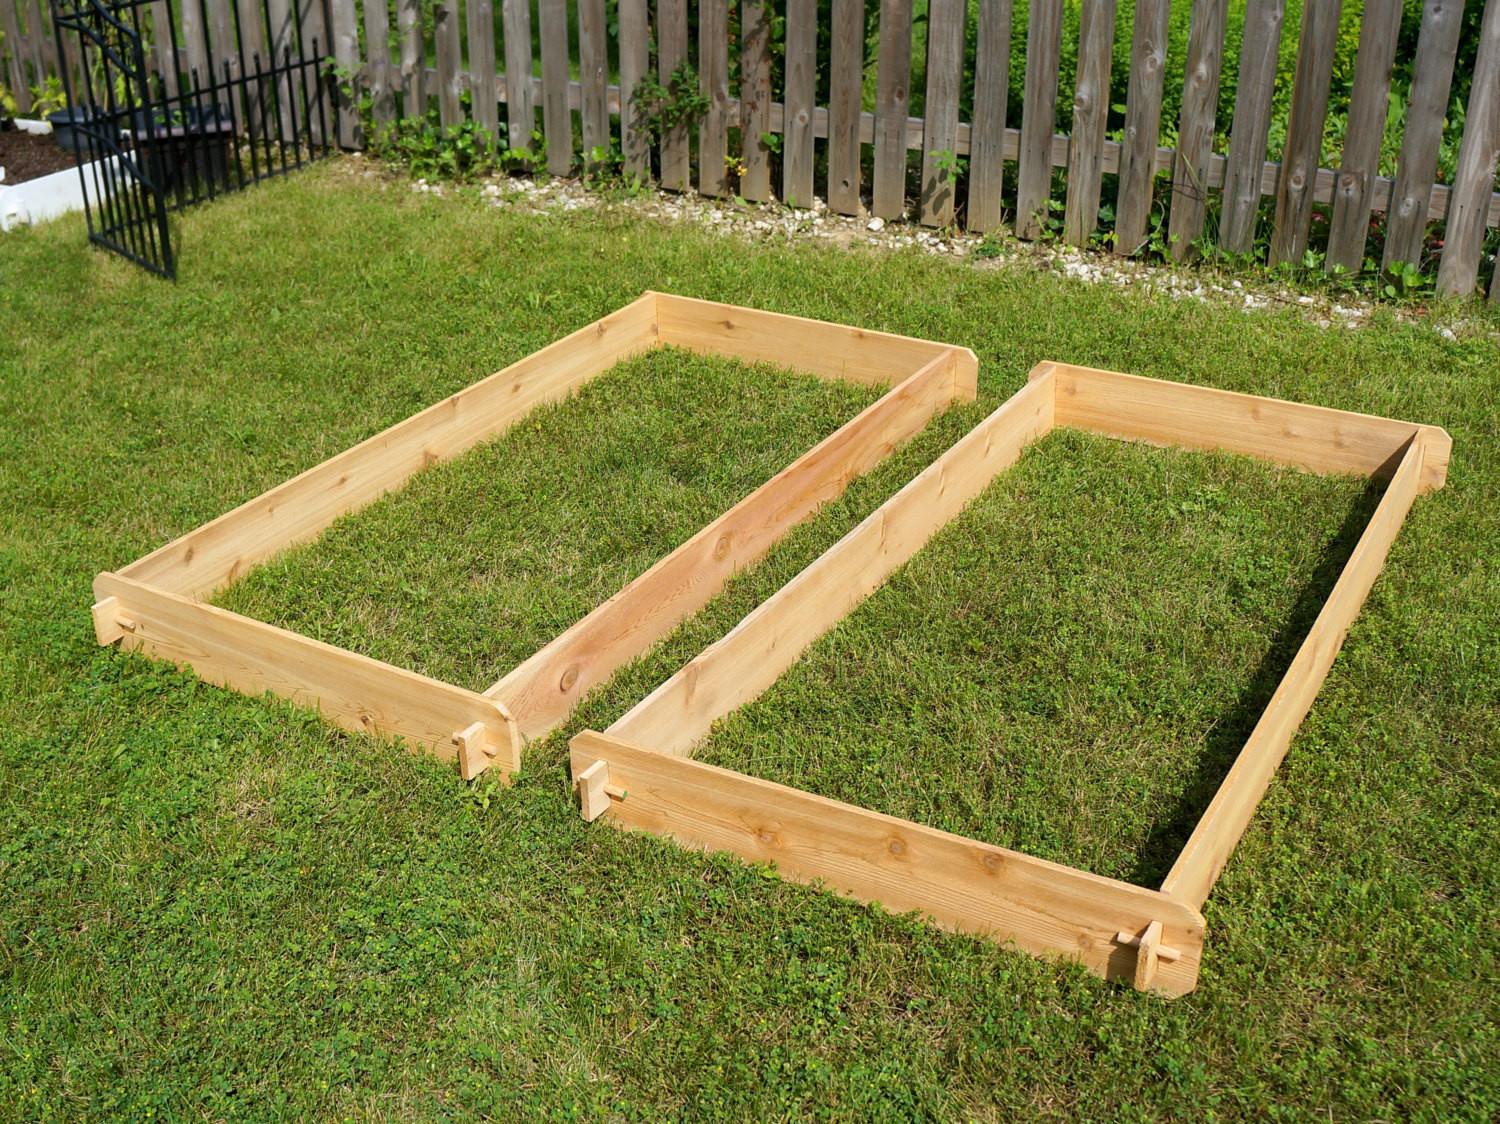 Best ideas about Raised Garden Planters . Save or Pin Raised Garden Planter Bed Flower Box Cedar and similar items Now.